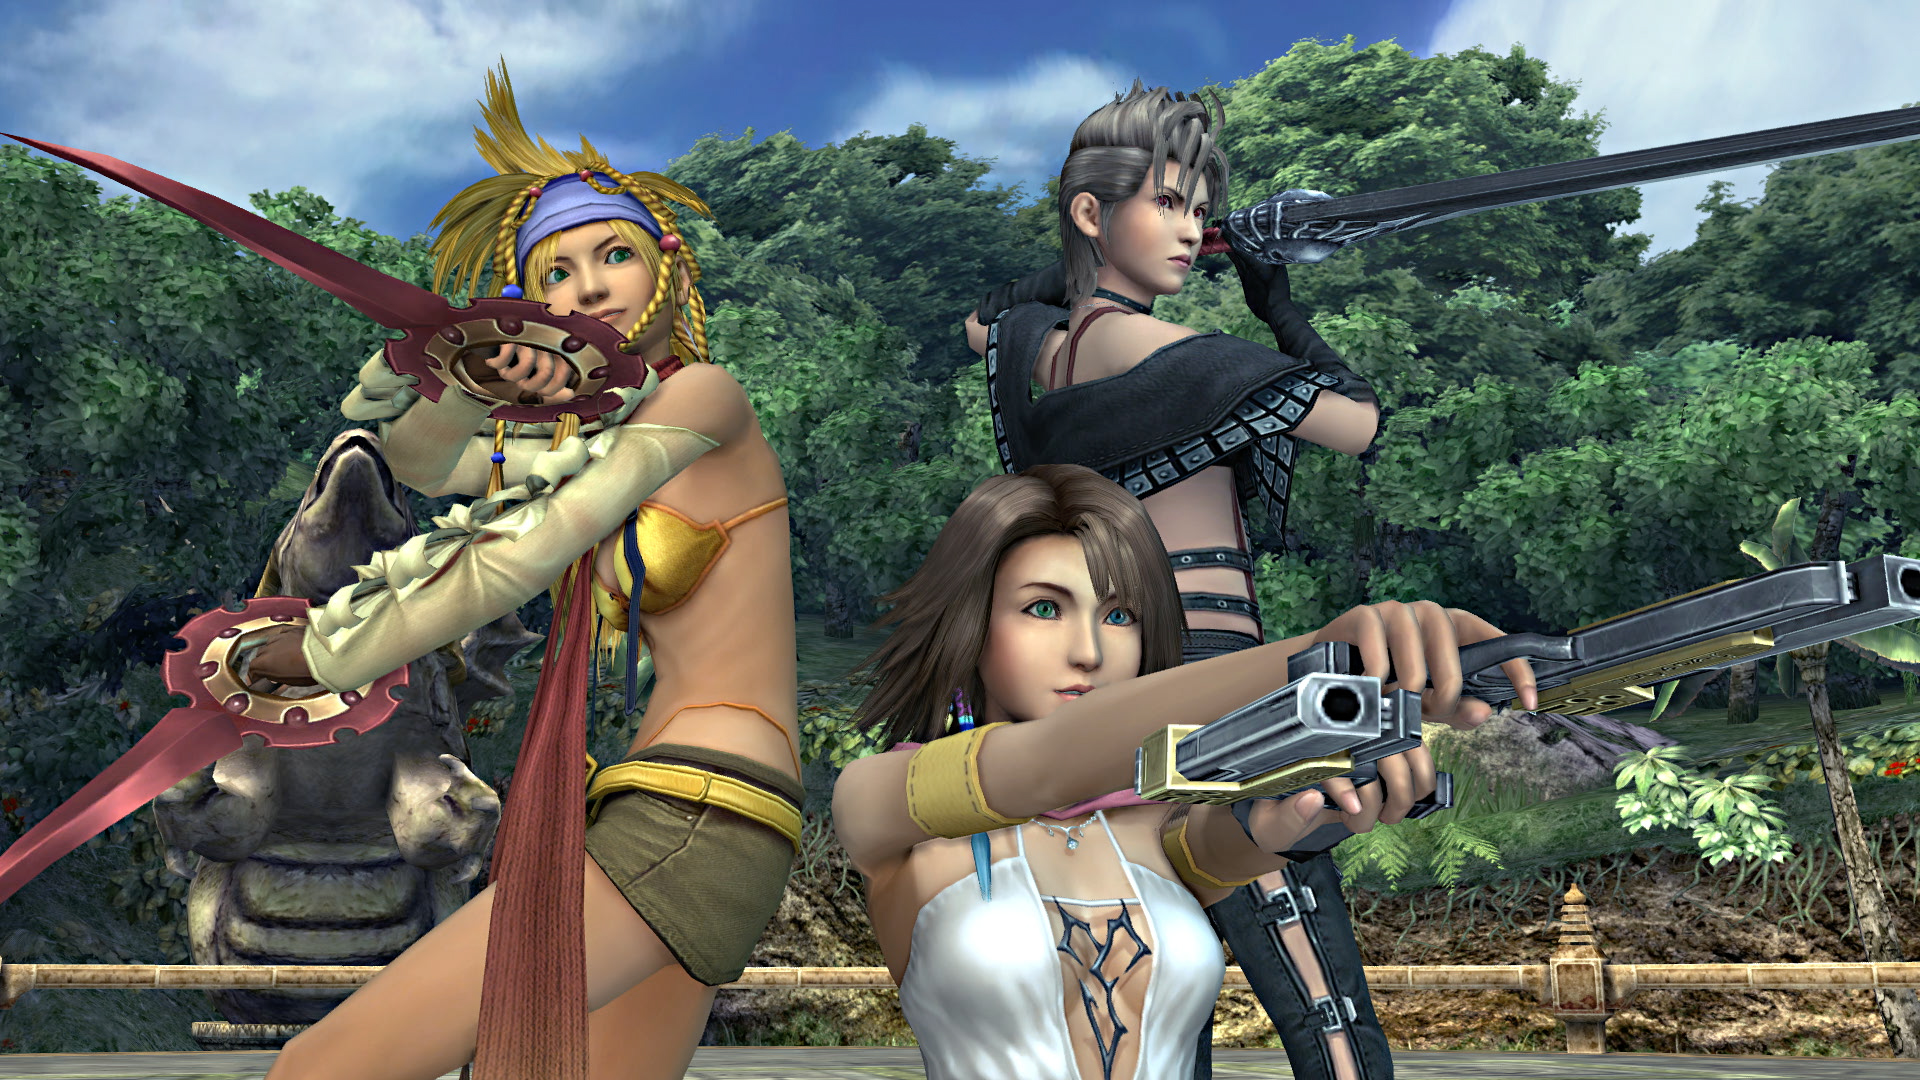 X X 2 Final Fantasy X X 2 Hd Launches Today For Playstation 4 Nova